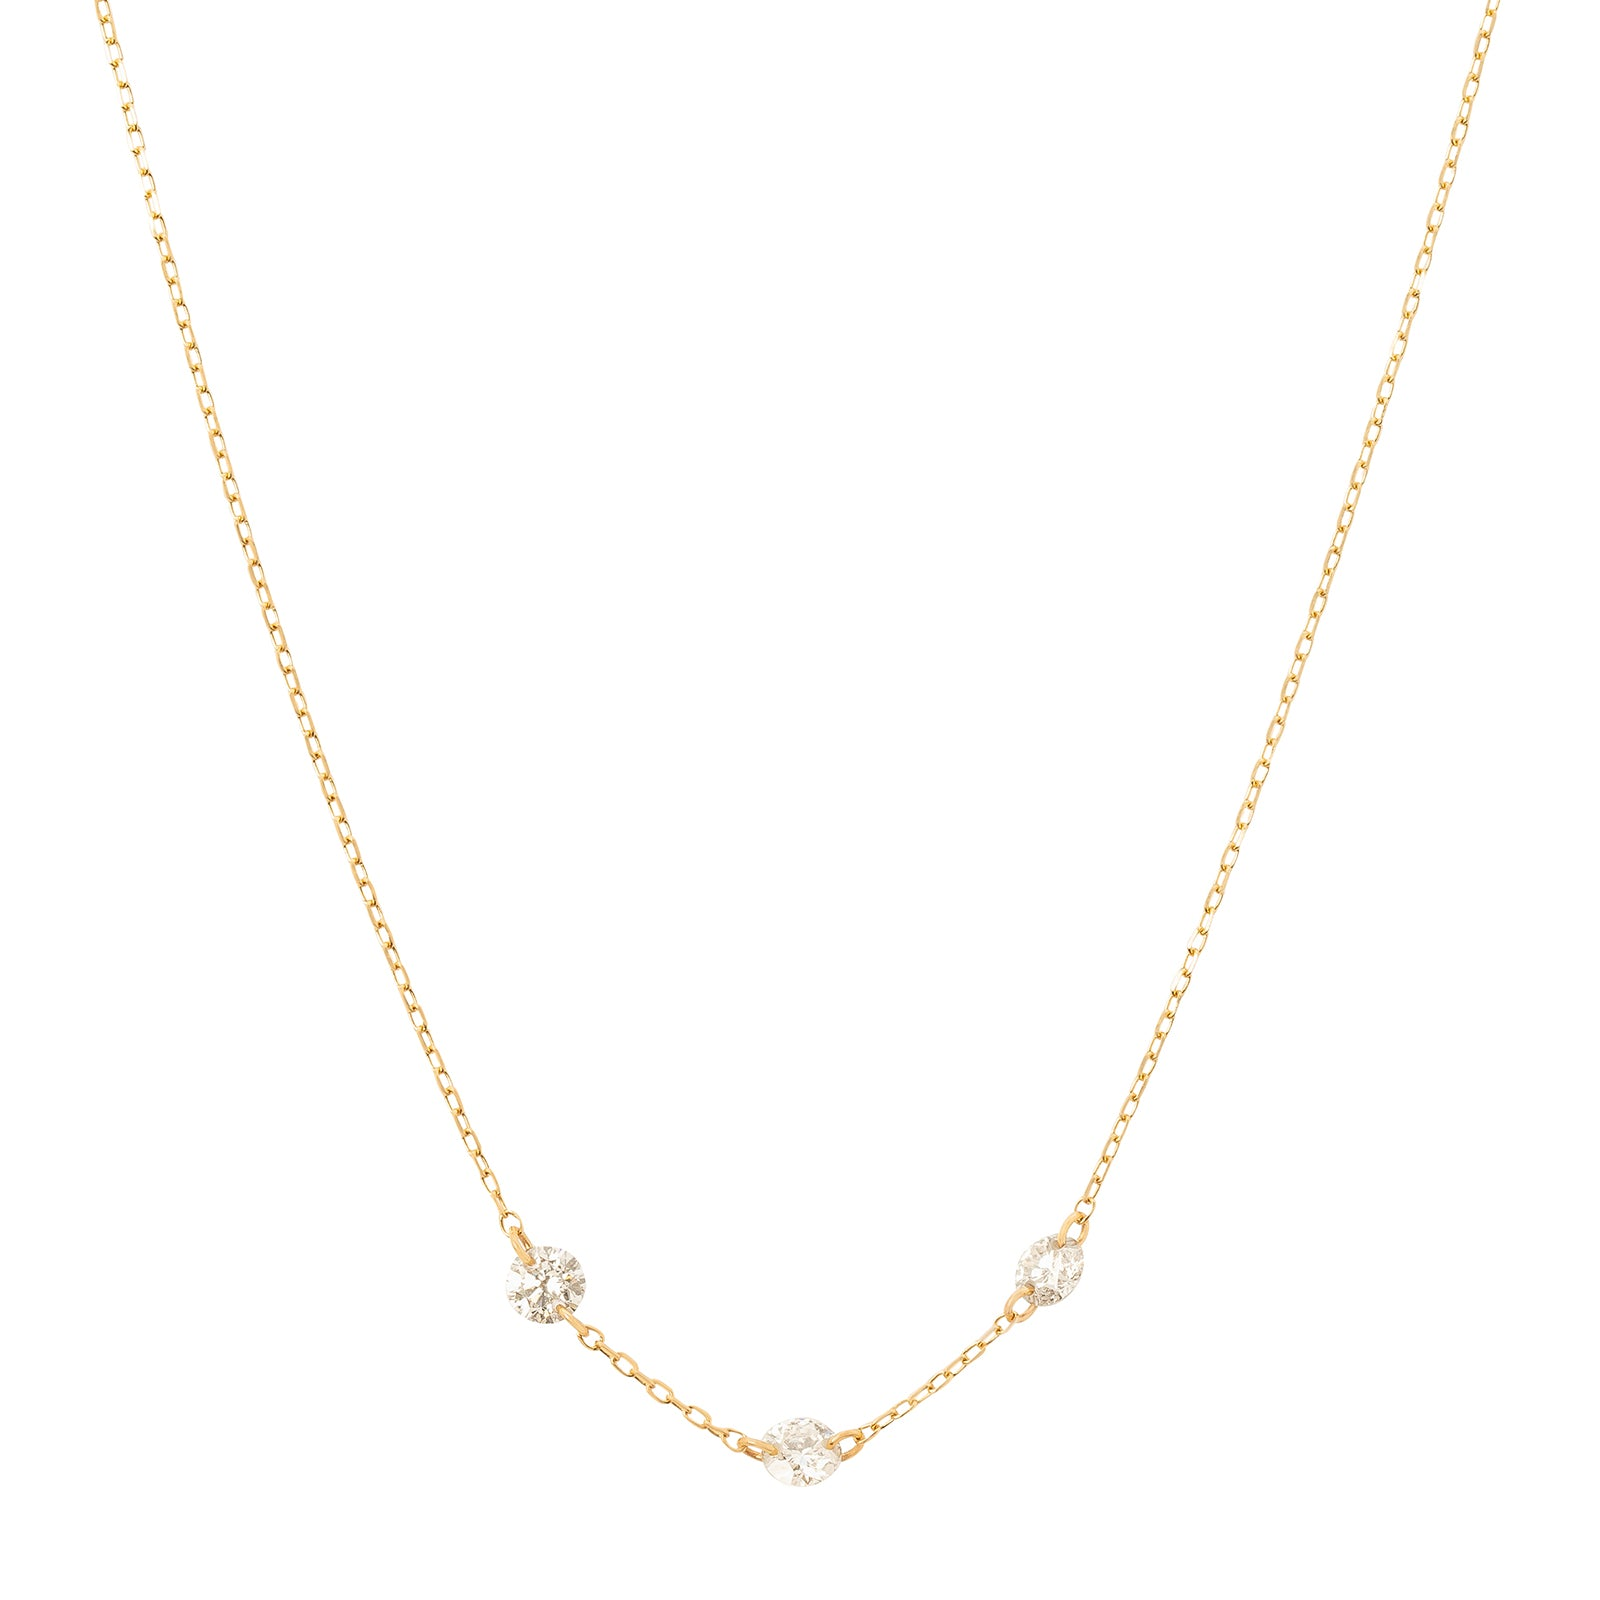 Persée Paris Danaé Trio Diamond Necklace - Necklaces - Broken English Jewelry